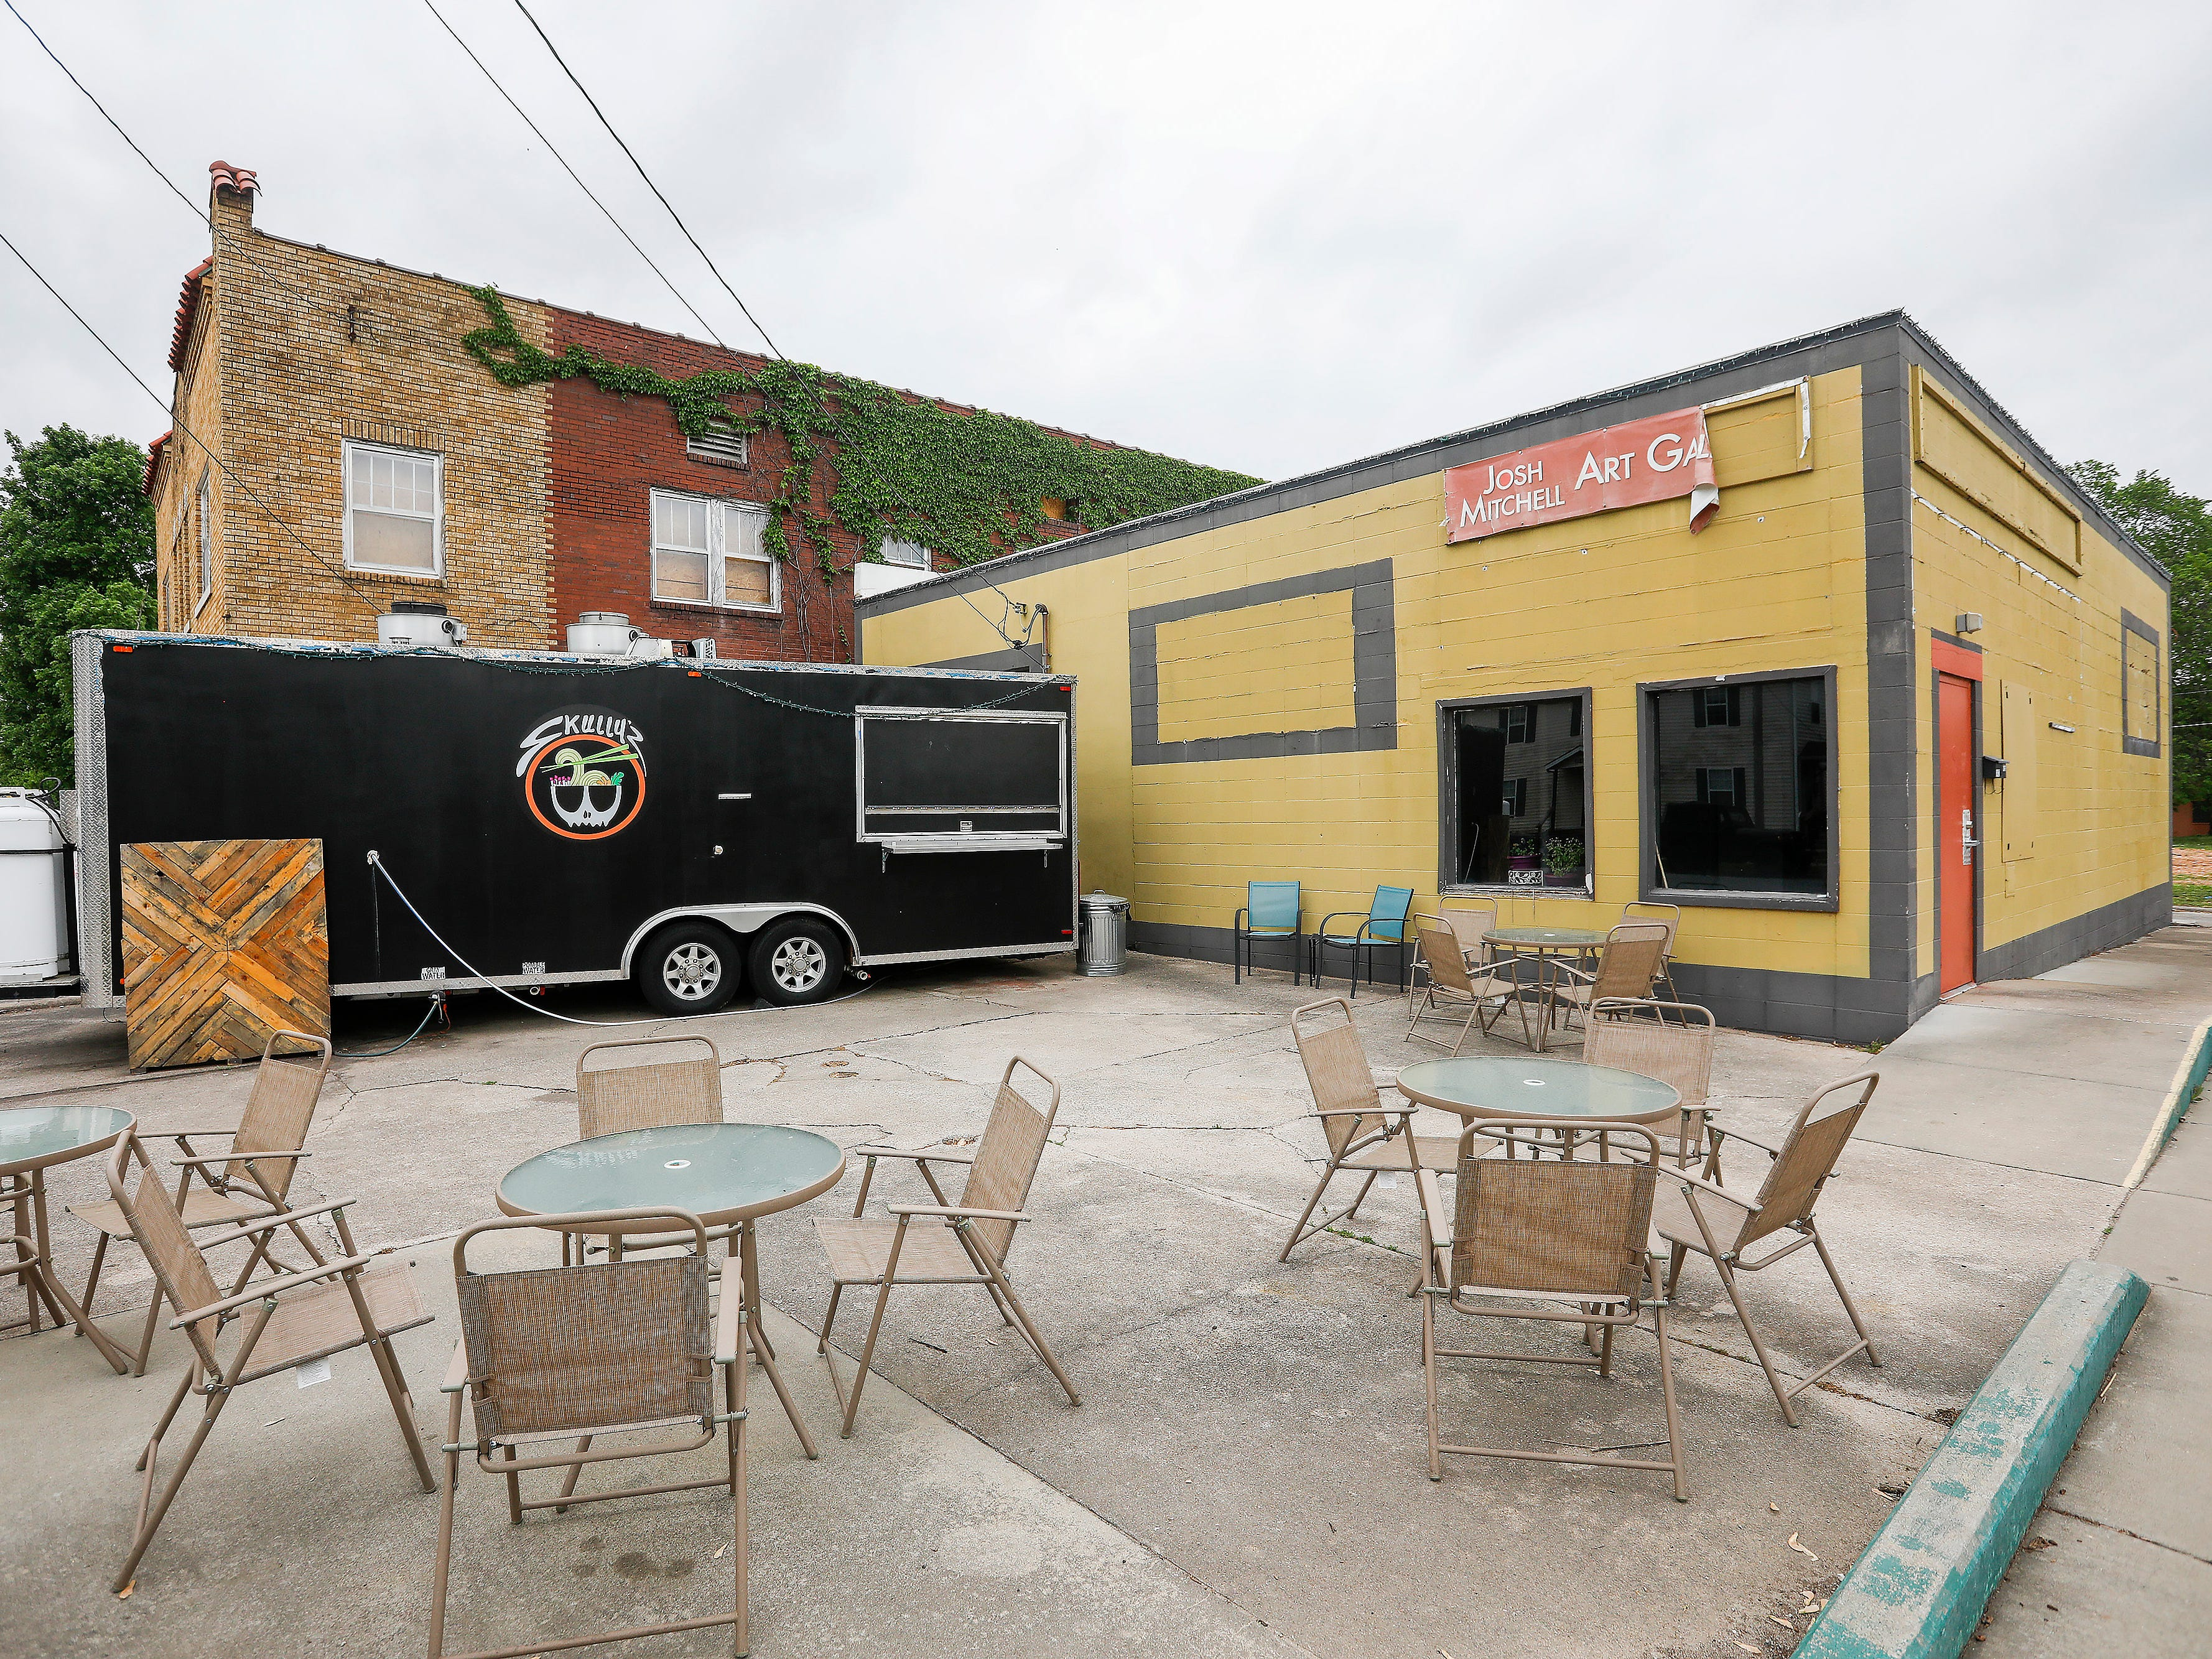 Skully's Food Truck will be moving into the former Josh Mitchell Art Gallery building at the corner of Cherry Street and Pickwick Avenue.